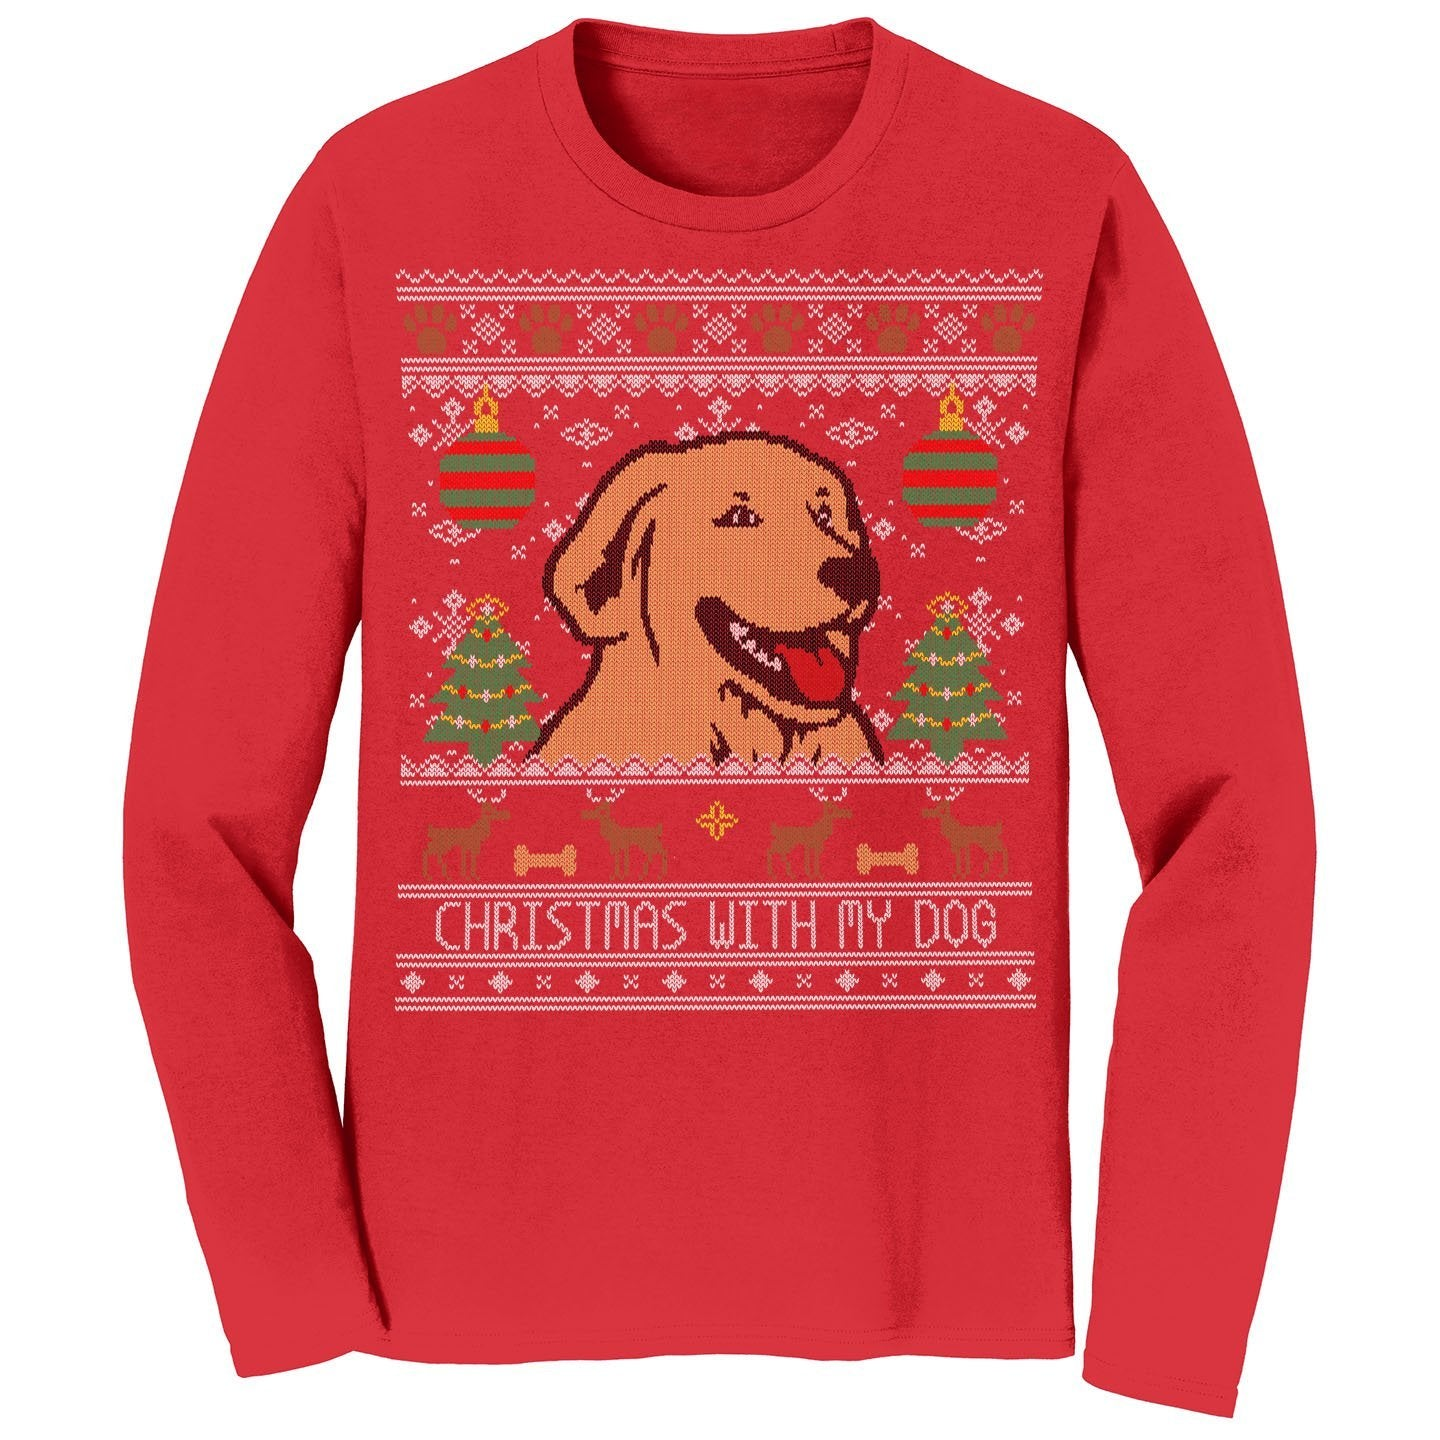 Ugly Christmas Sweater With My Dog - Adult Unisex Long Sleeve T-Shirt